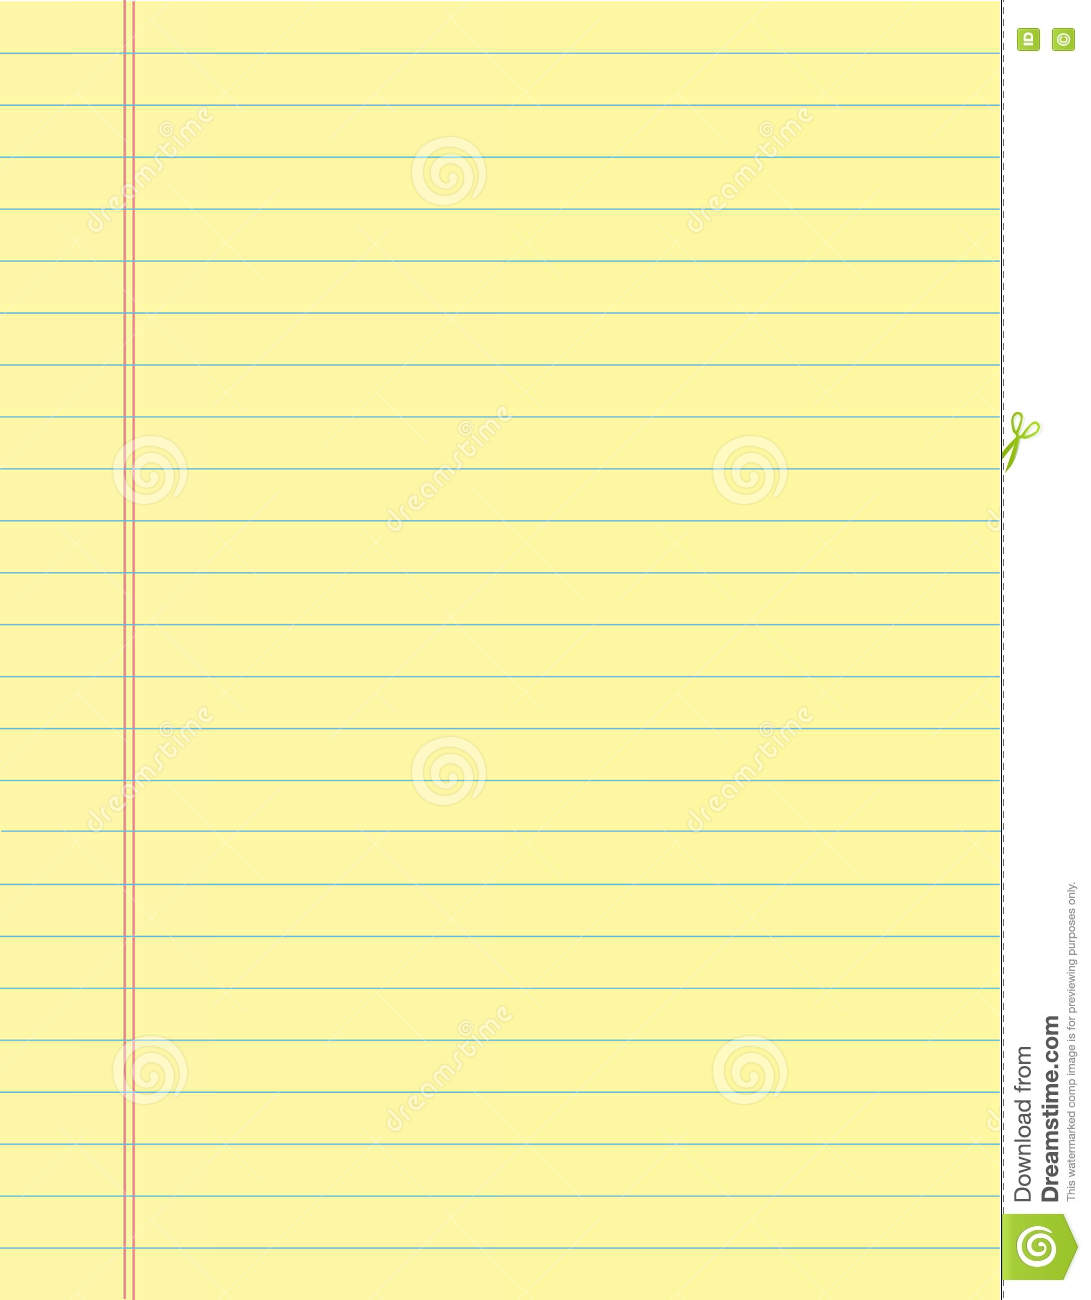 school notebook paper sheet. exercise book page background. lined